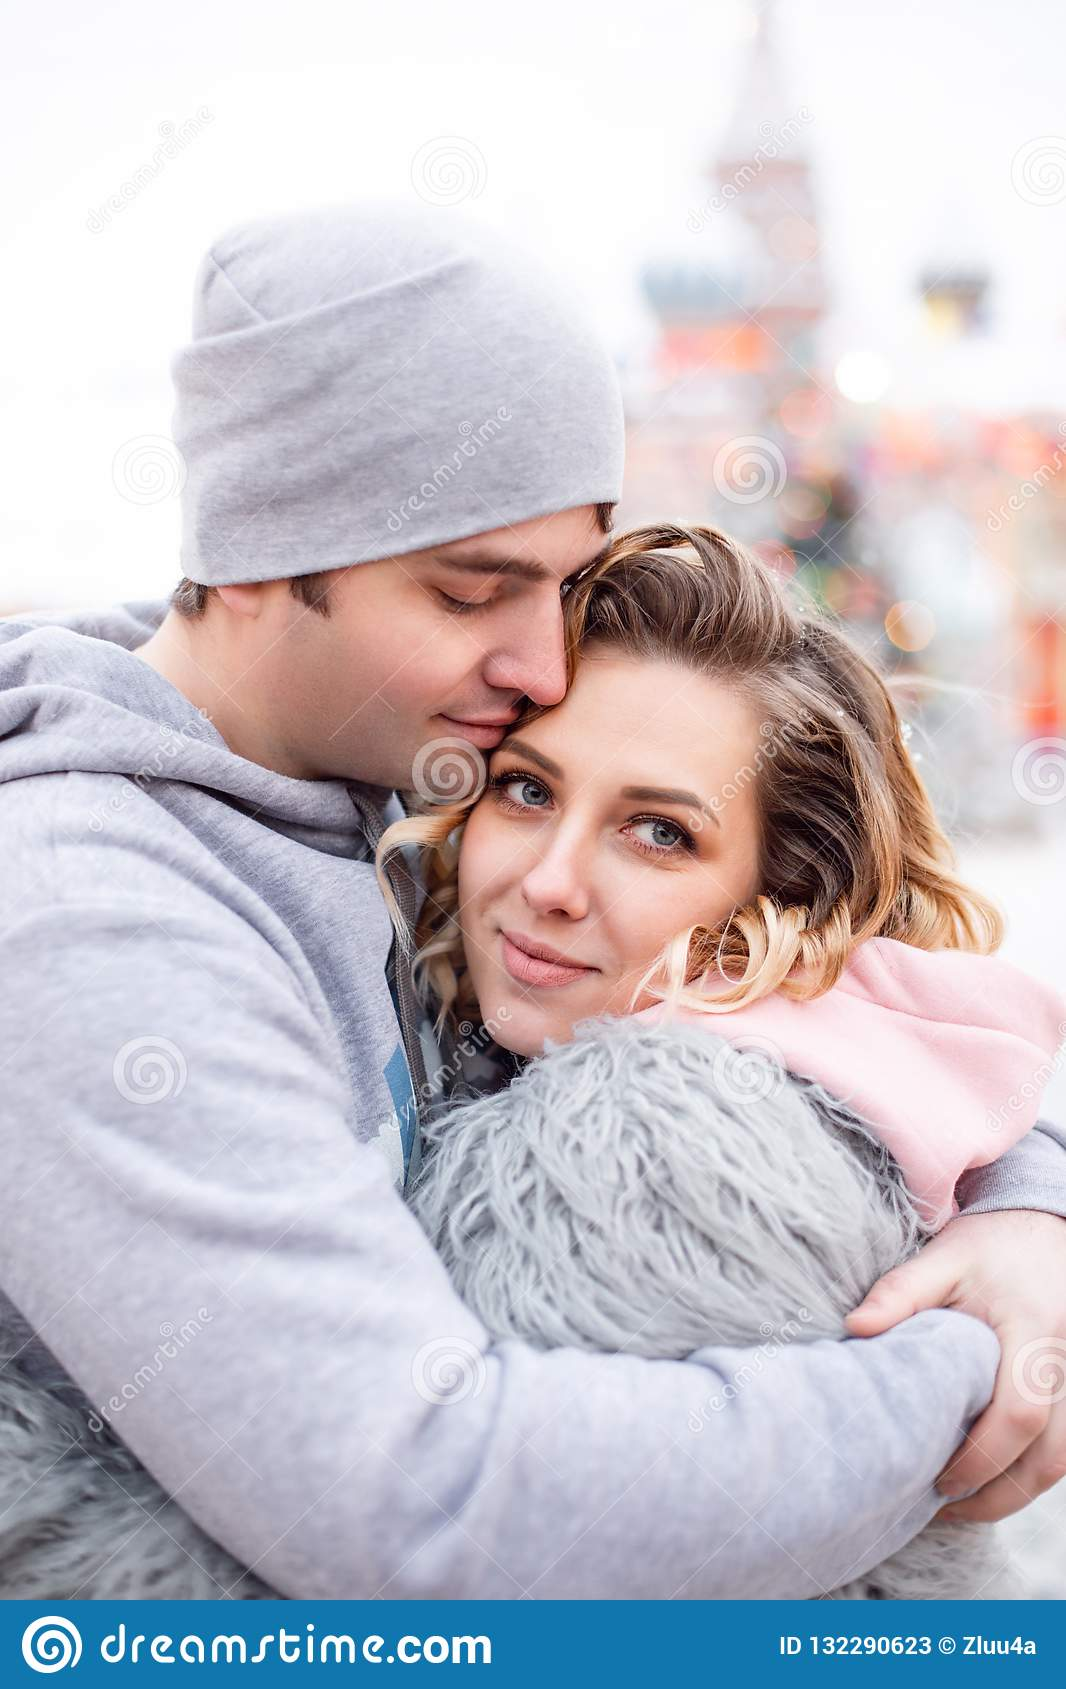 Portrait happy young couple in love at warm winter day, man hugs woman wearing eco fur, tenderness moment